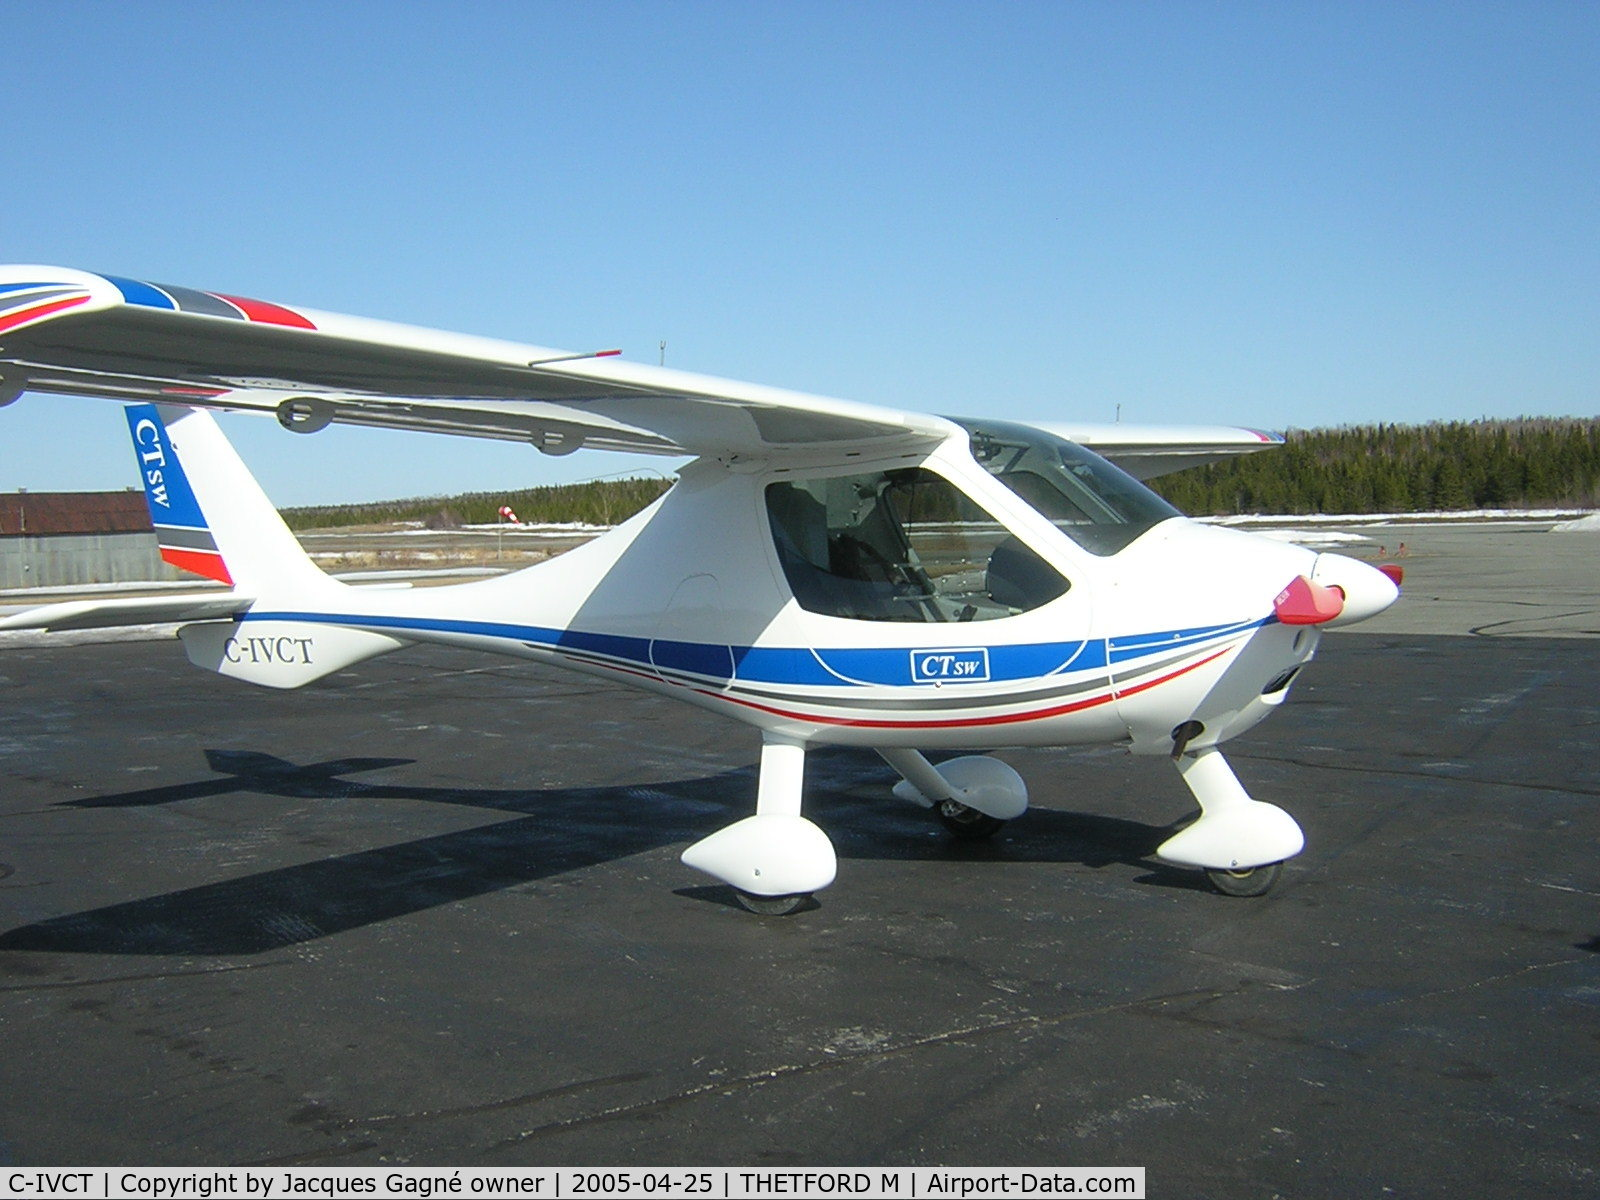 C-IVCT, 2005 Flight Design CTSW C/N 05-01-02, CTSW for sale